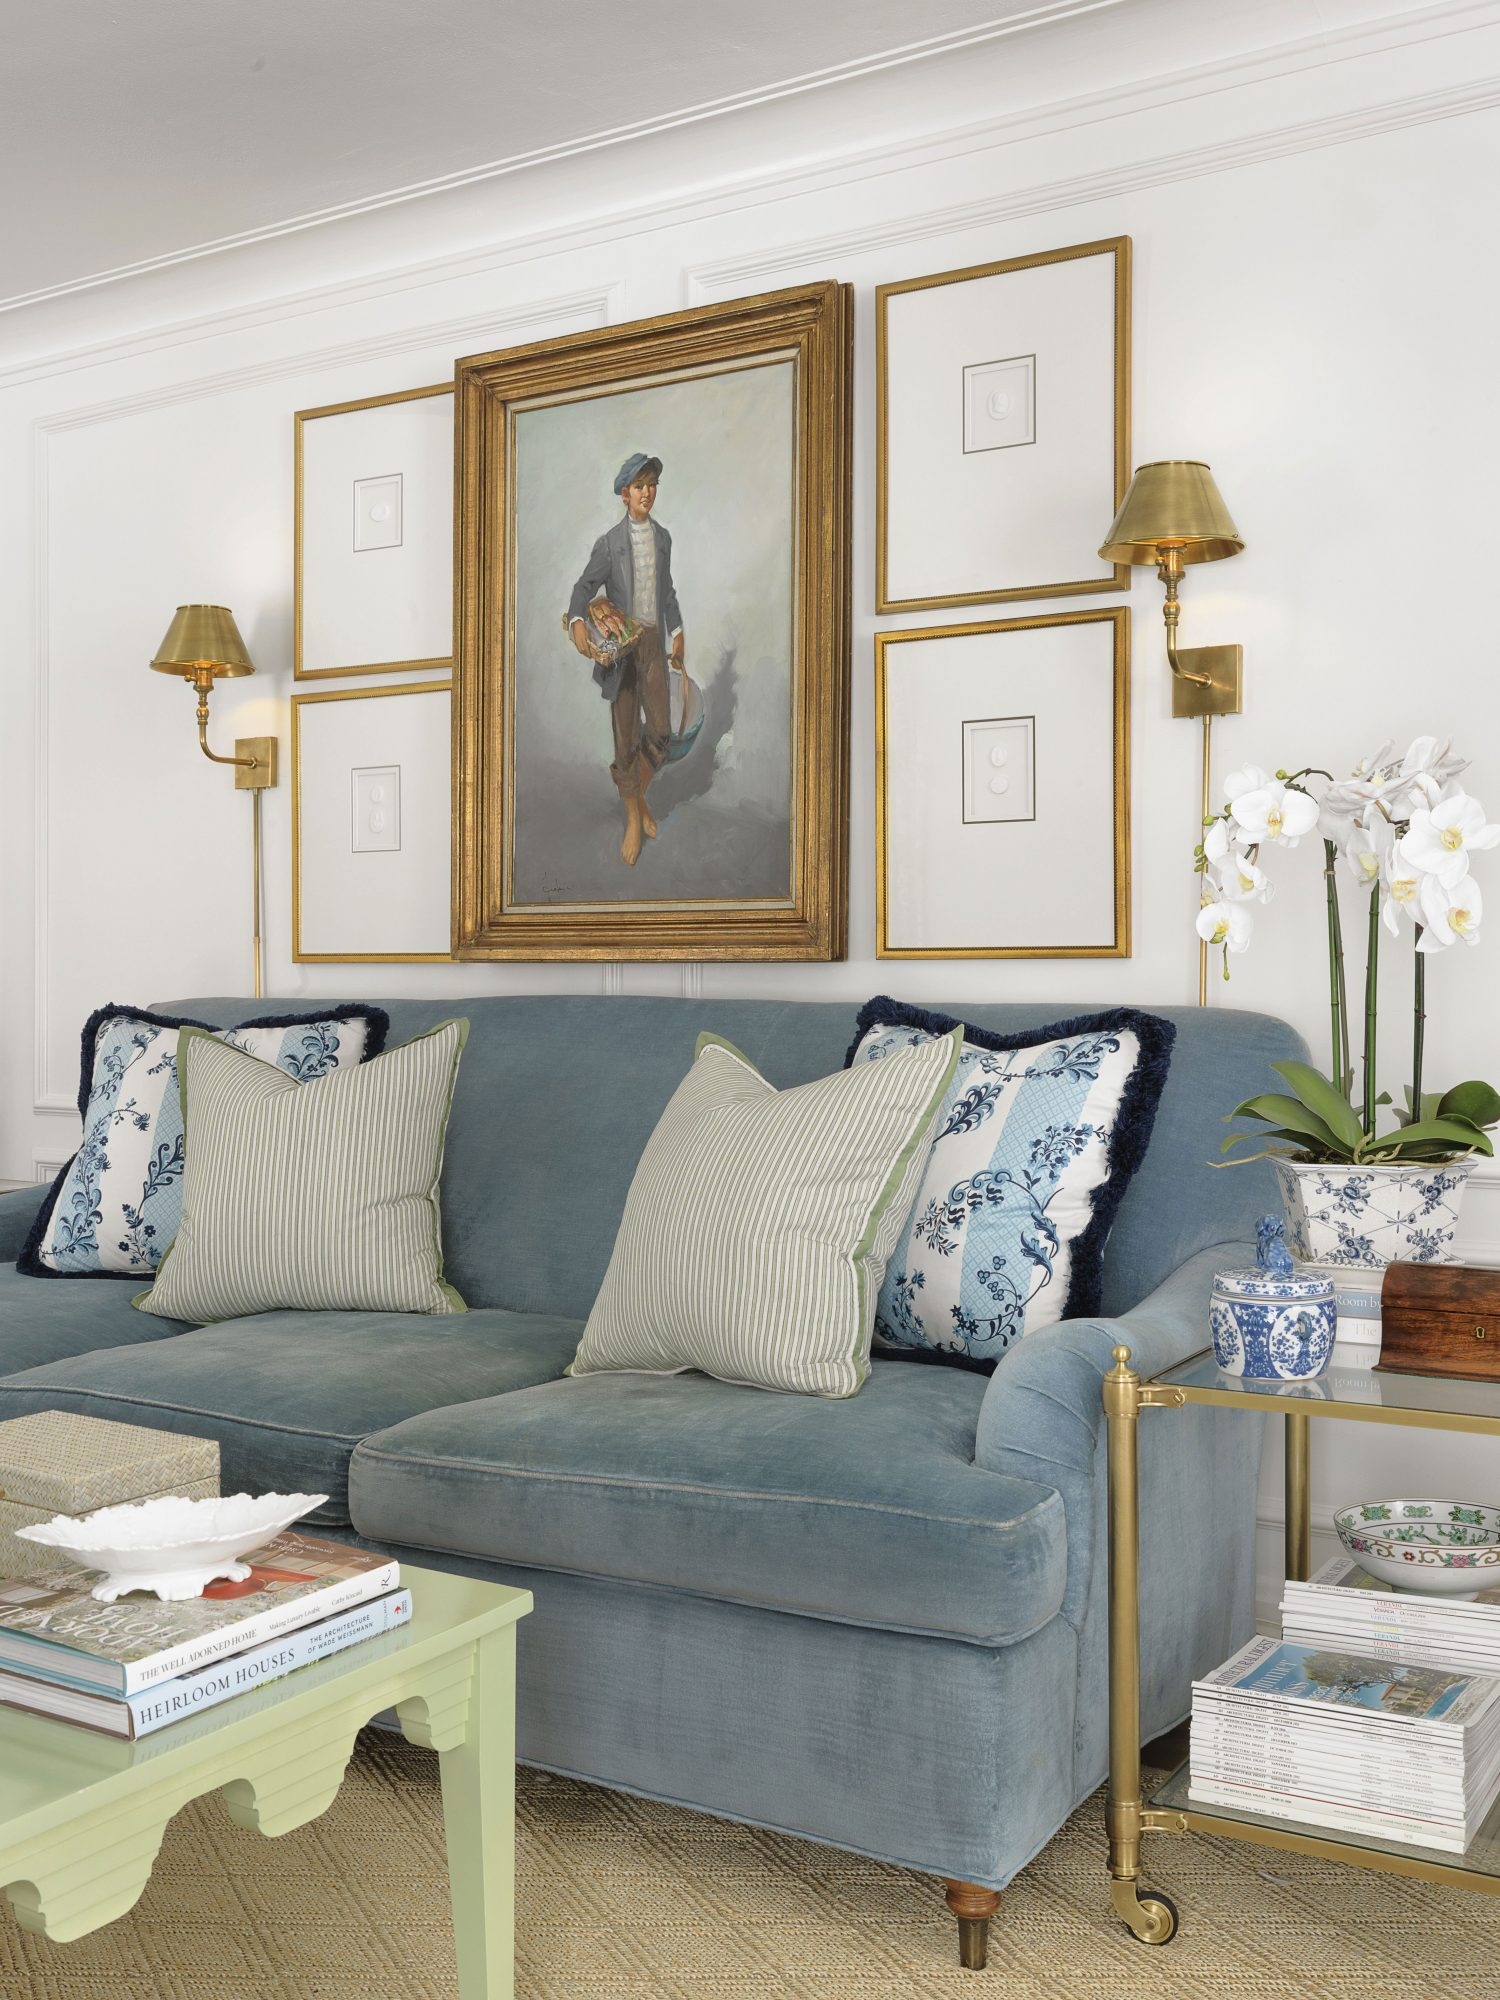 Living Room with Blue Velvet Couch, Gold Sconces, and Orchid